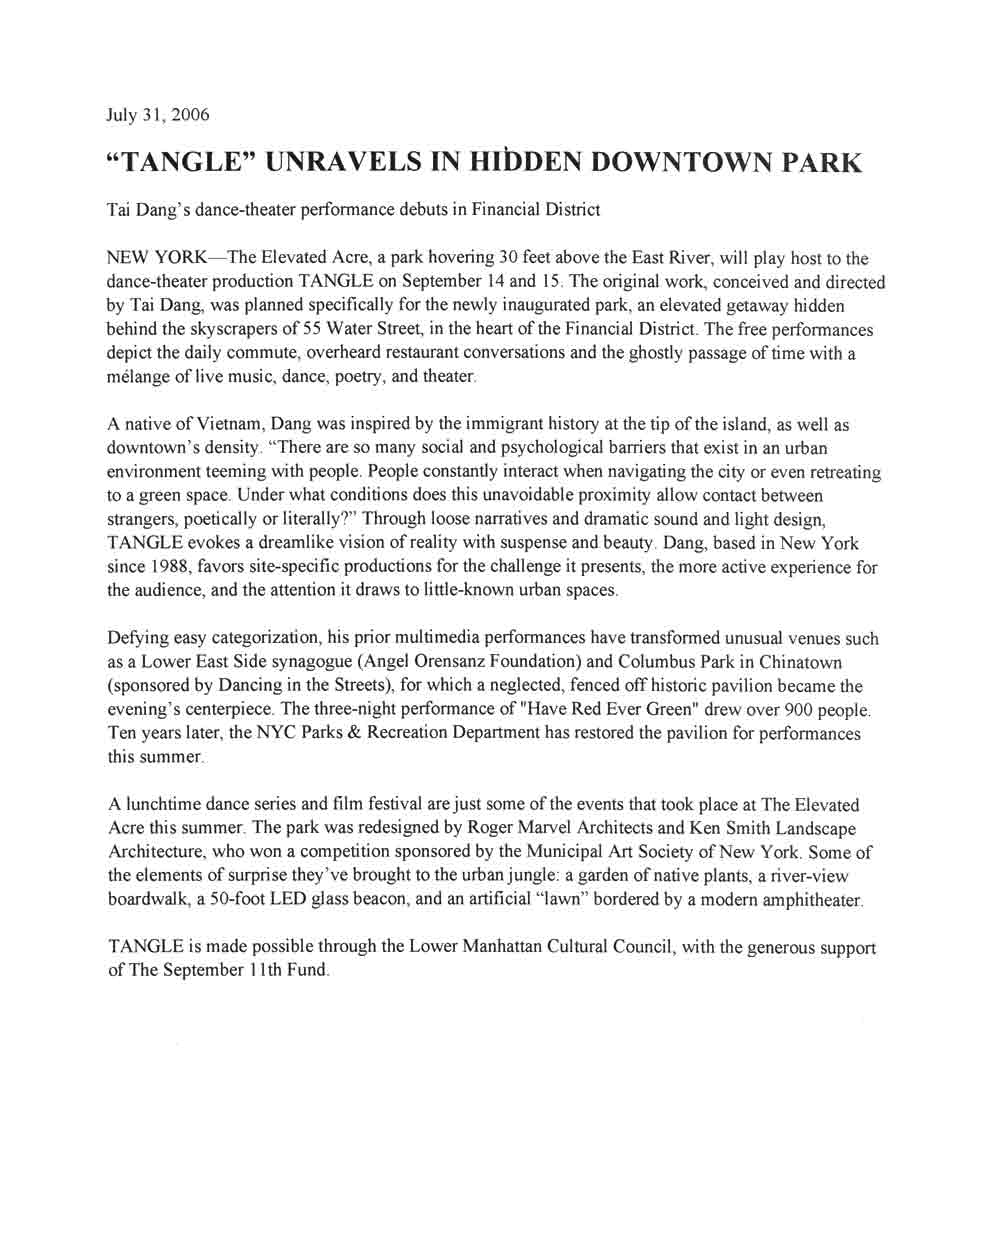 'Tangle' Unravels in Hidden Downtown Park, article